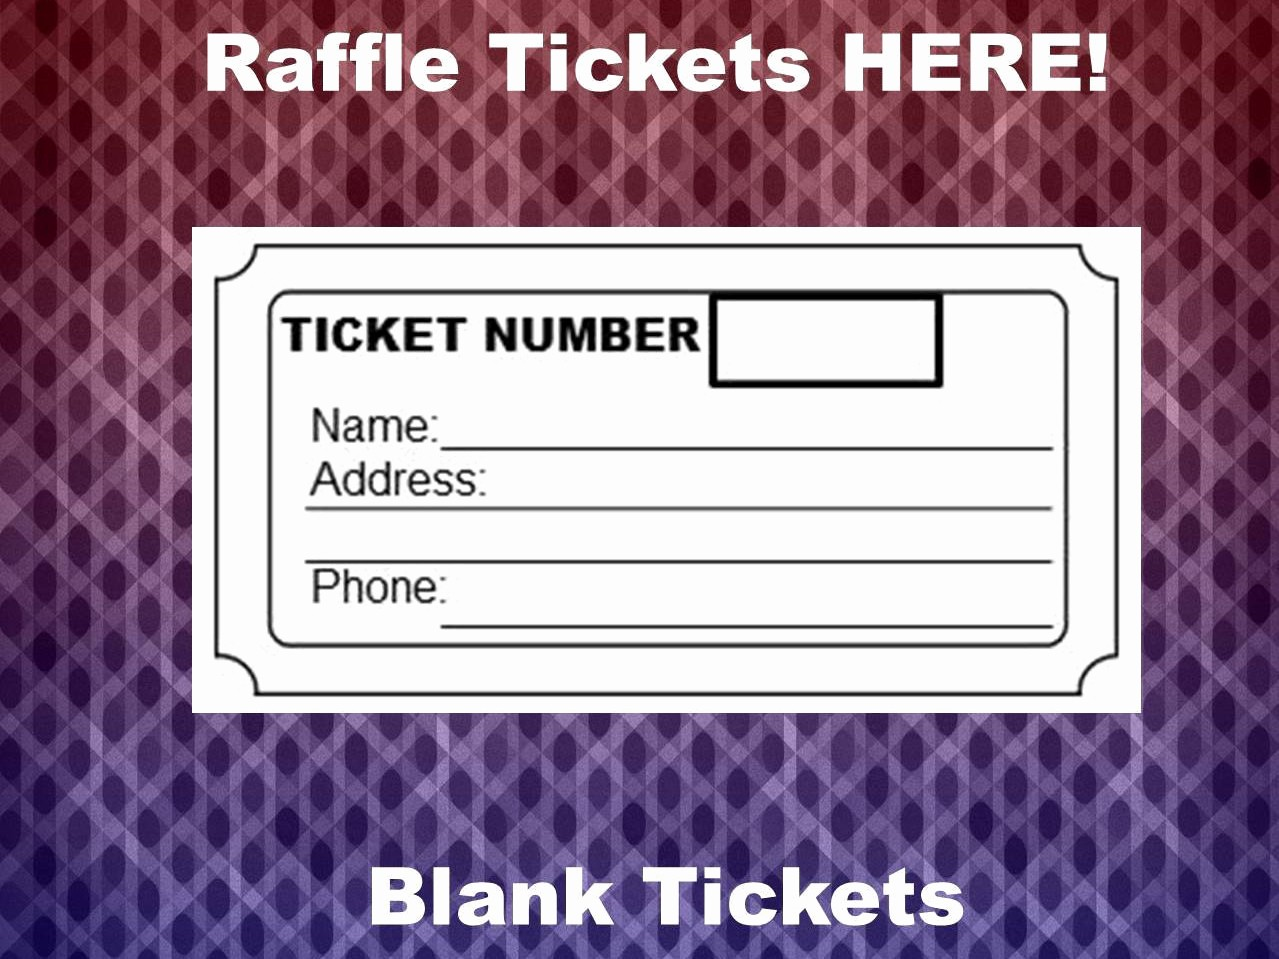 Blank Raffle Ticket Template Free Inspirational Raffle Ticket Template 8 Blank Raffle Tickets Per Page Party